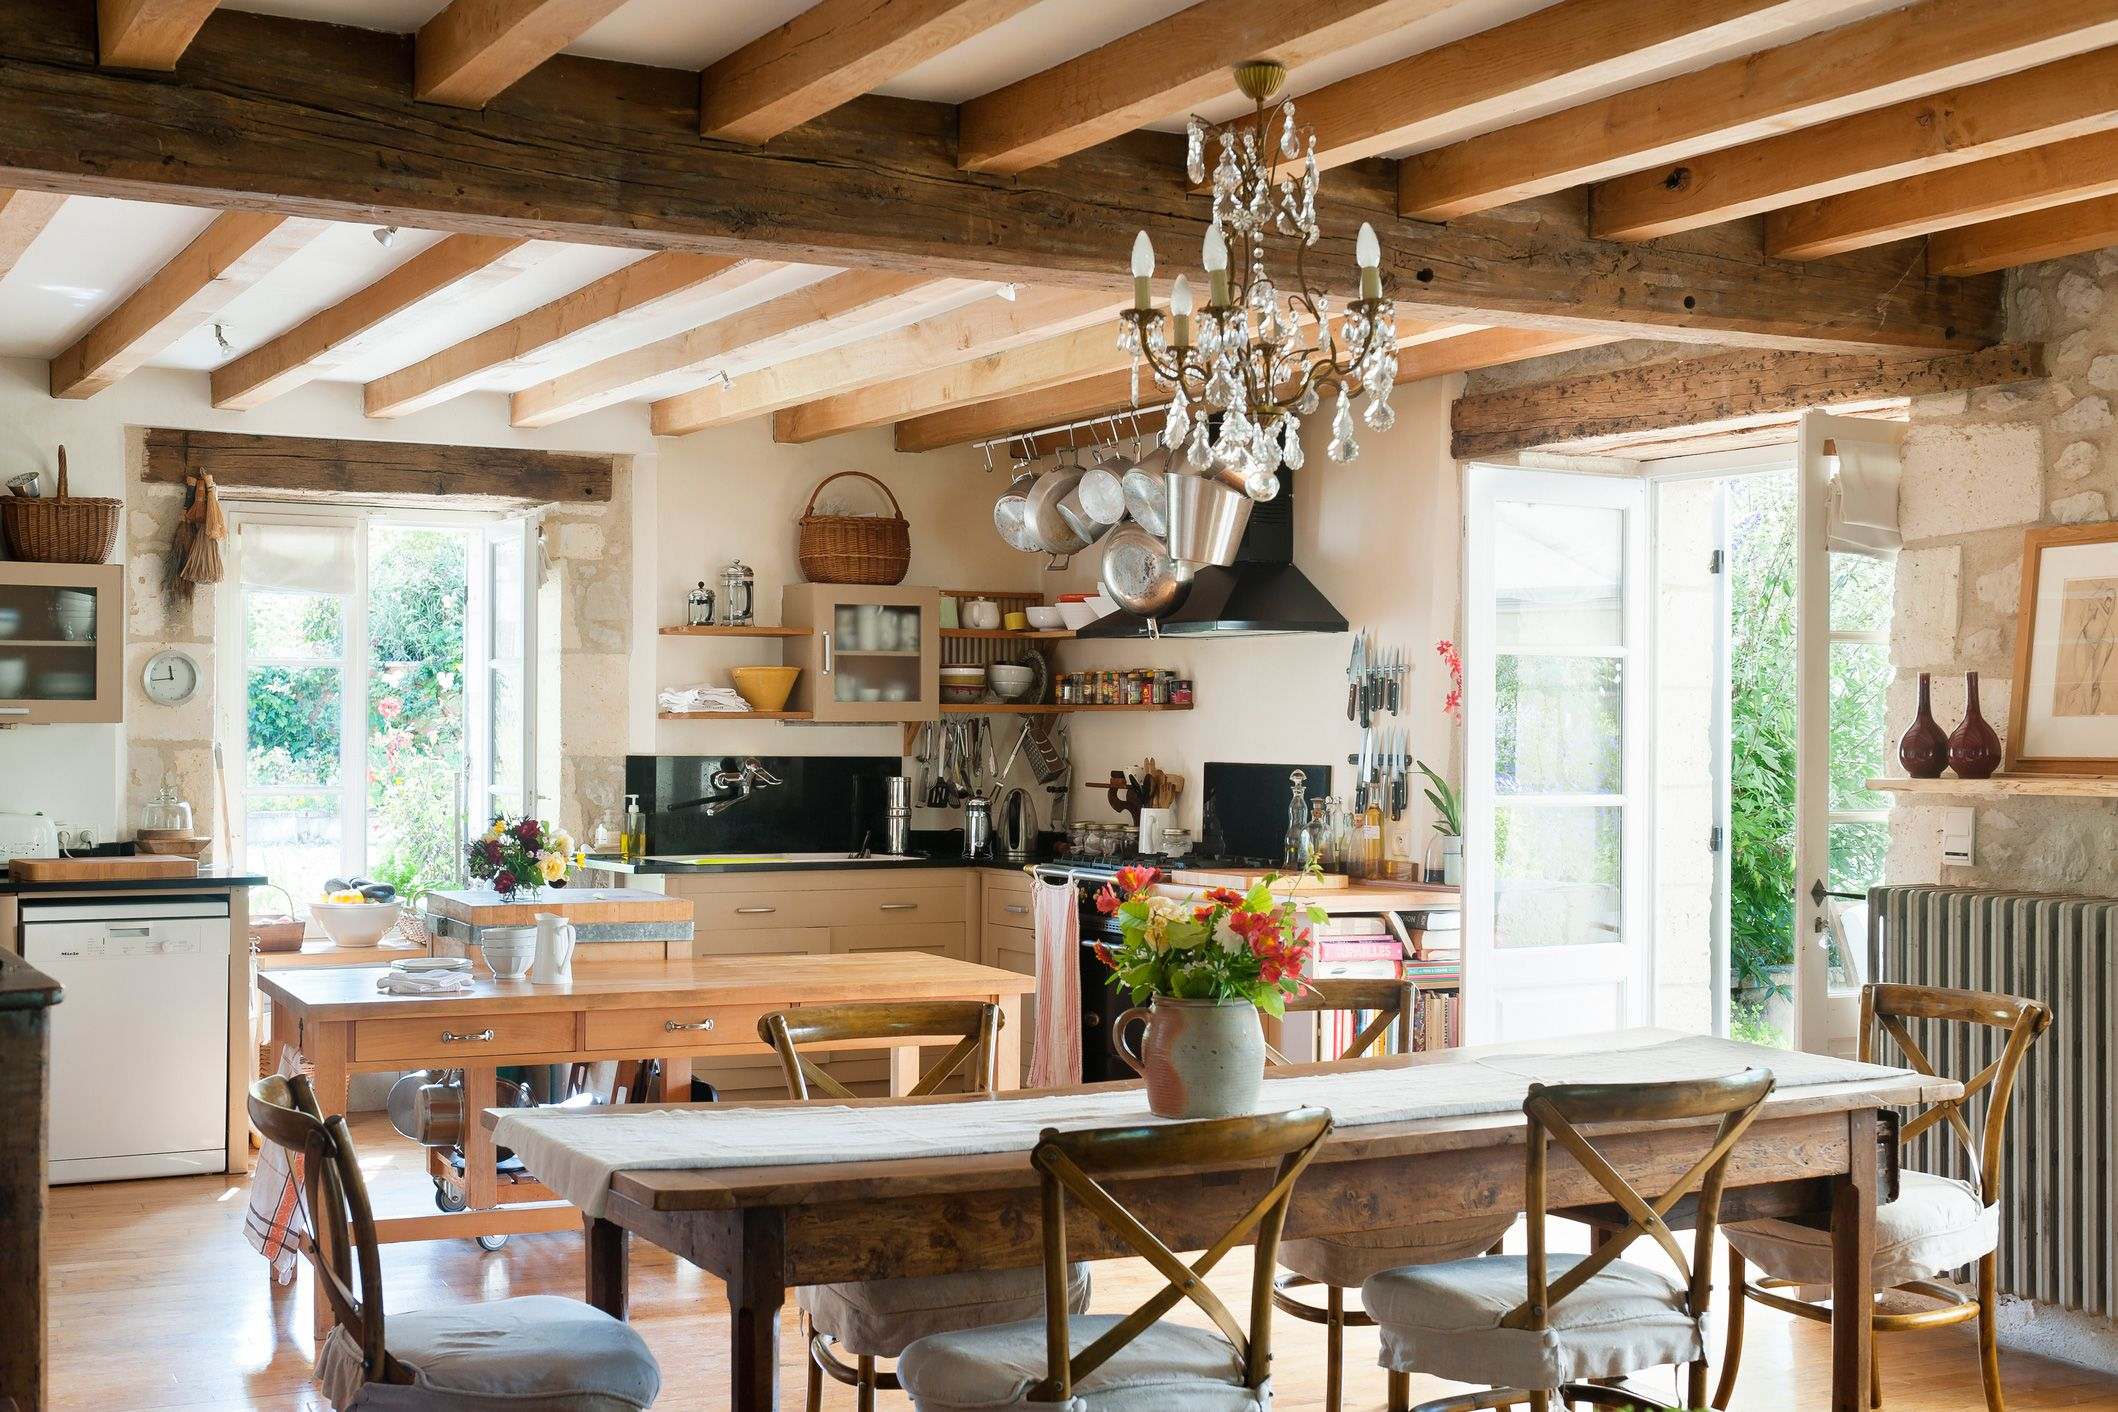 Interior Design French Country Essential Elements Of French Country Style Decor